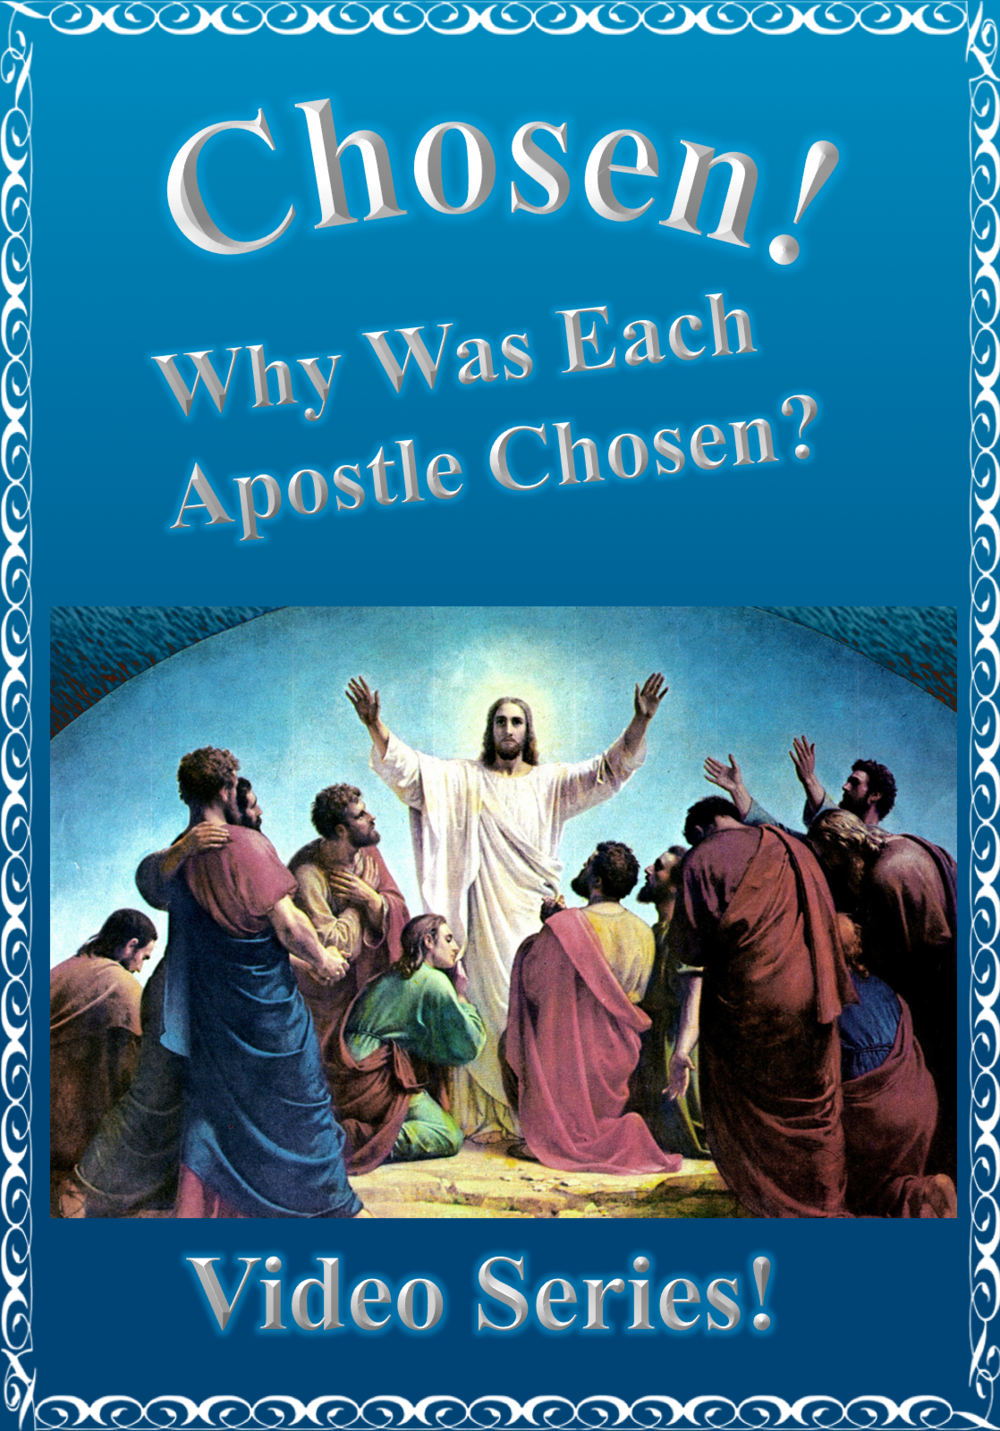 Free Video Series on the Apostles!